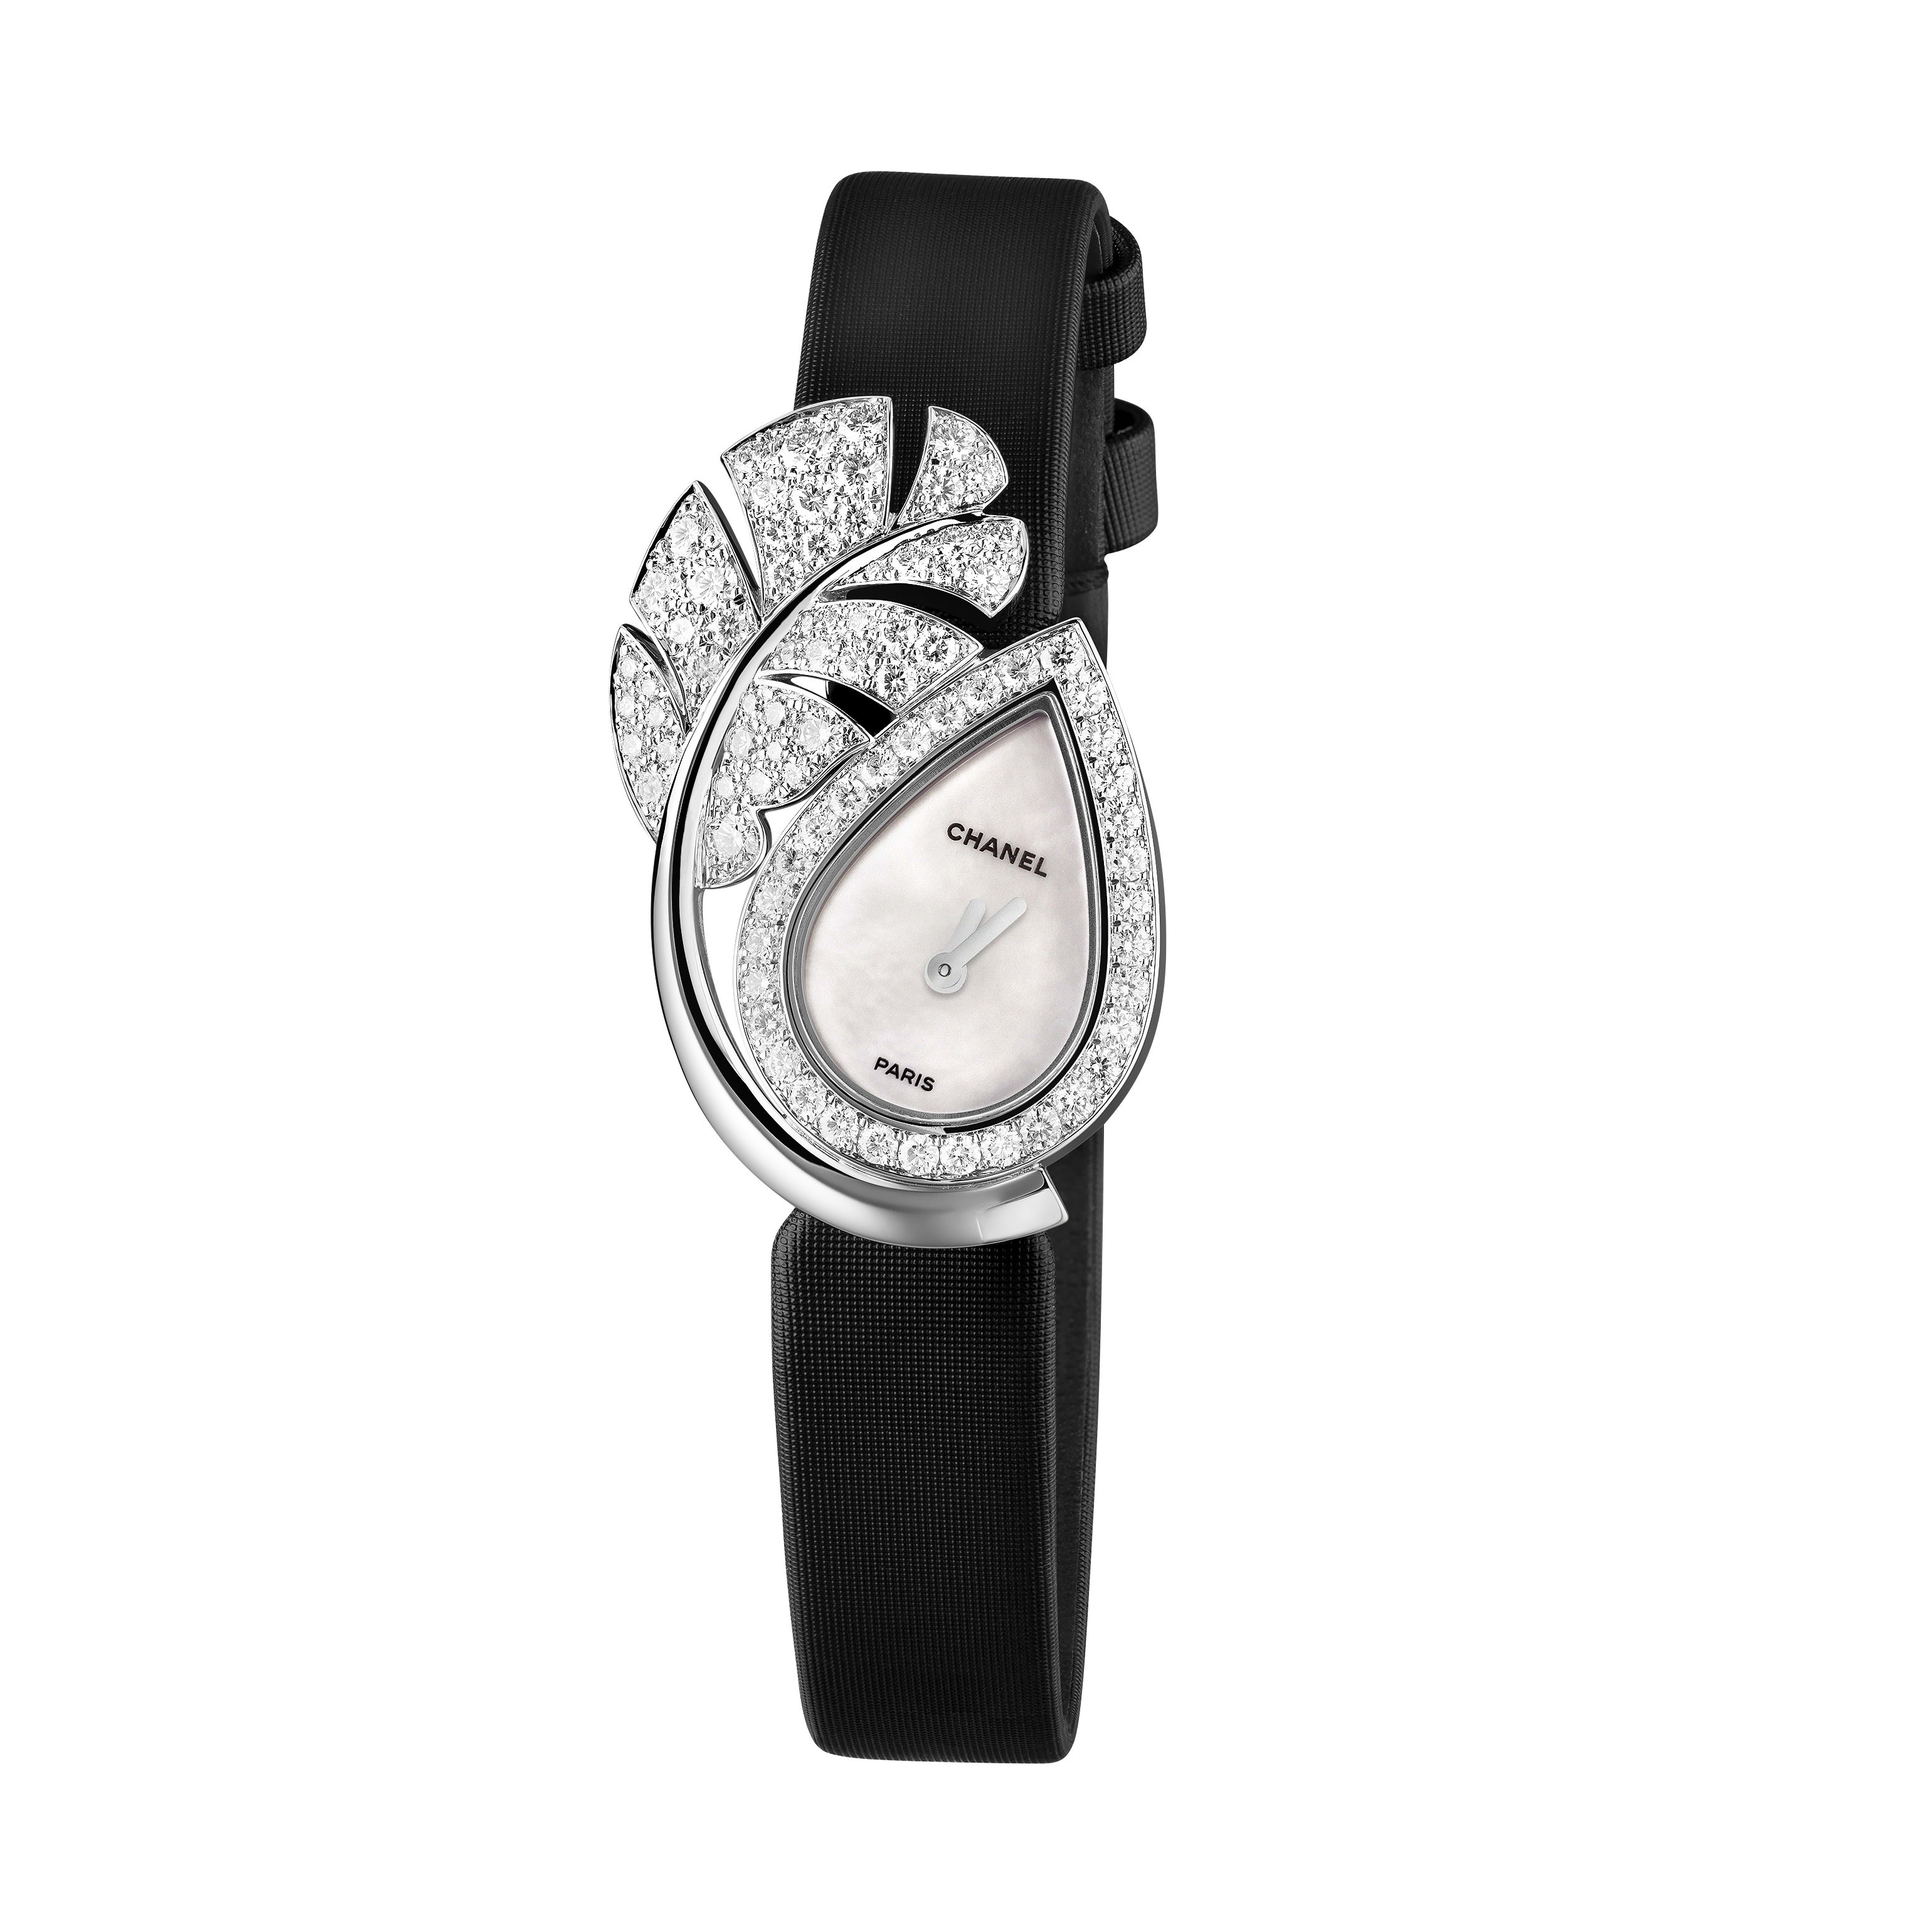 Plume de CHANEL Jewellery Watch - Feather motif in 18K white gold and diamonds - CHANEL - Default view - see standard sized version